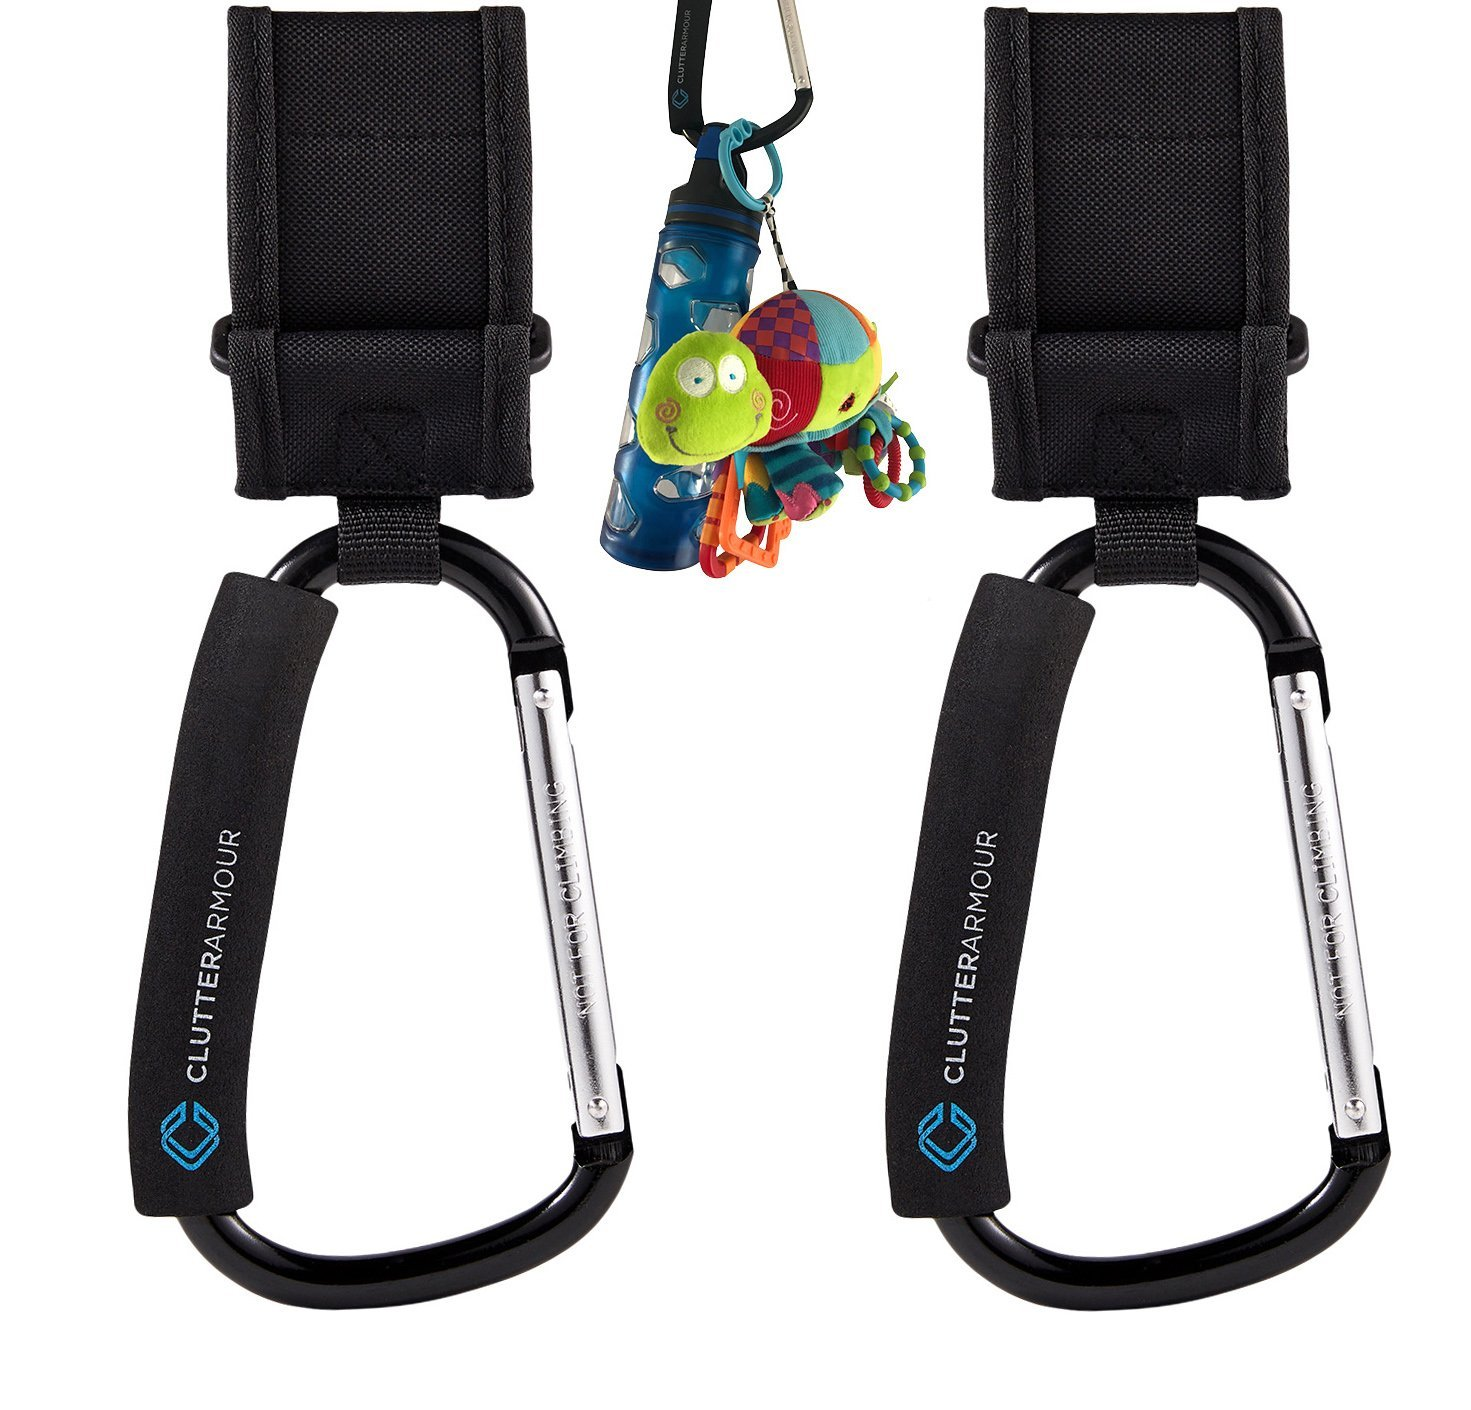 Stroller Hooks - Handy 2/Set XL Organizer for Strollers - Velcro Straps for Universal Fit - Heavy Duty Storage Hook for Shopping Bags, Diaper Bag, Purse, Kids Backpack, Toys - Multi Purpose Baby Hook